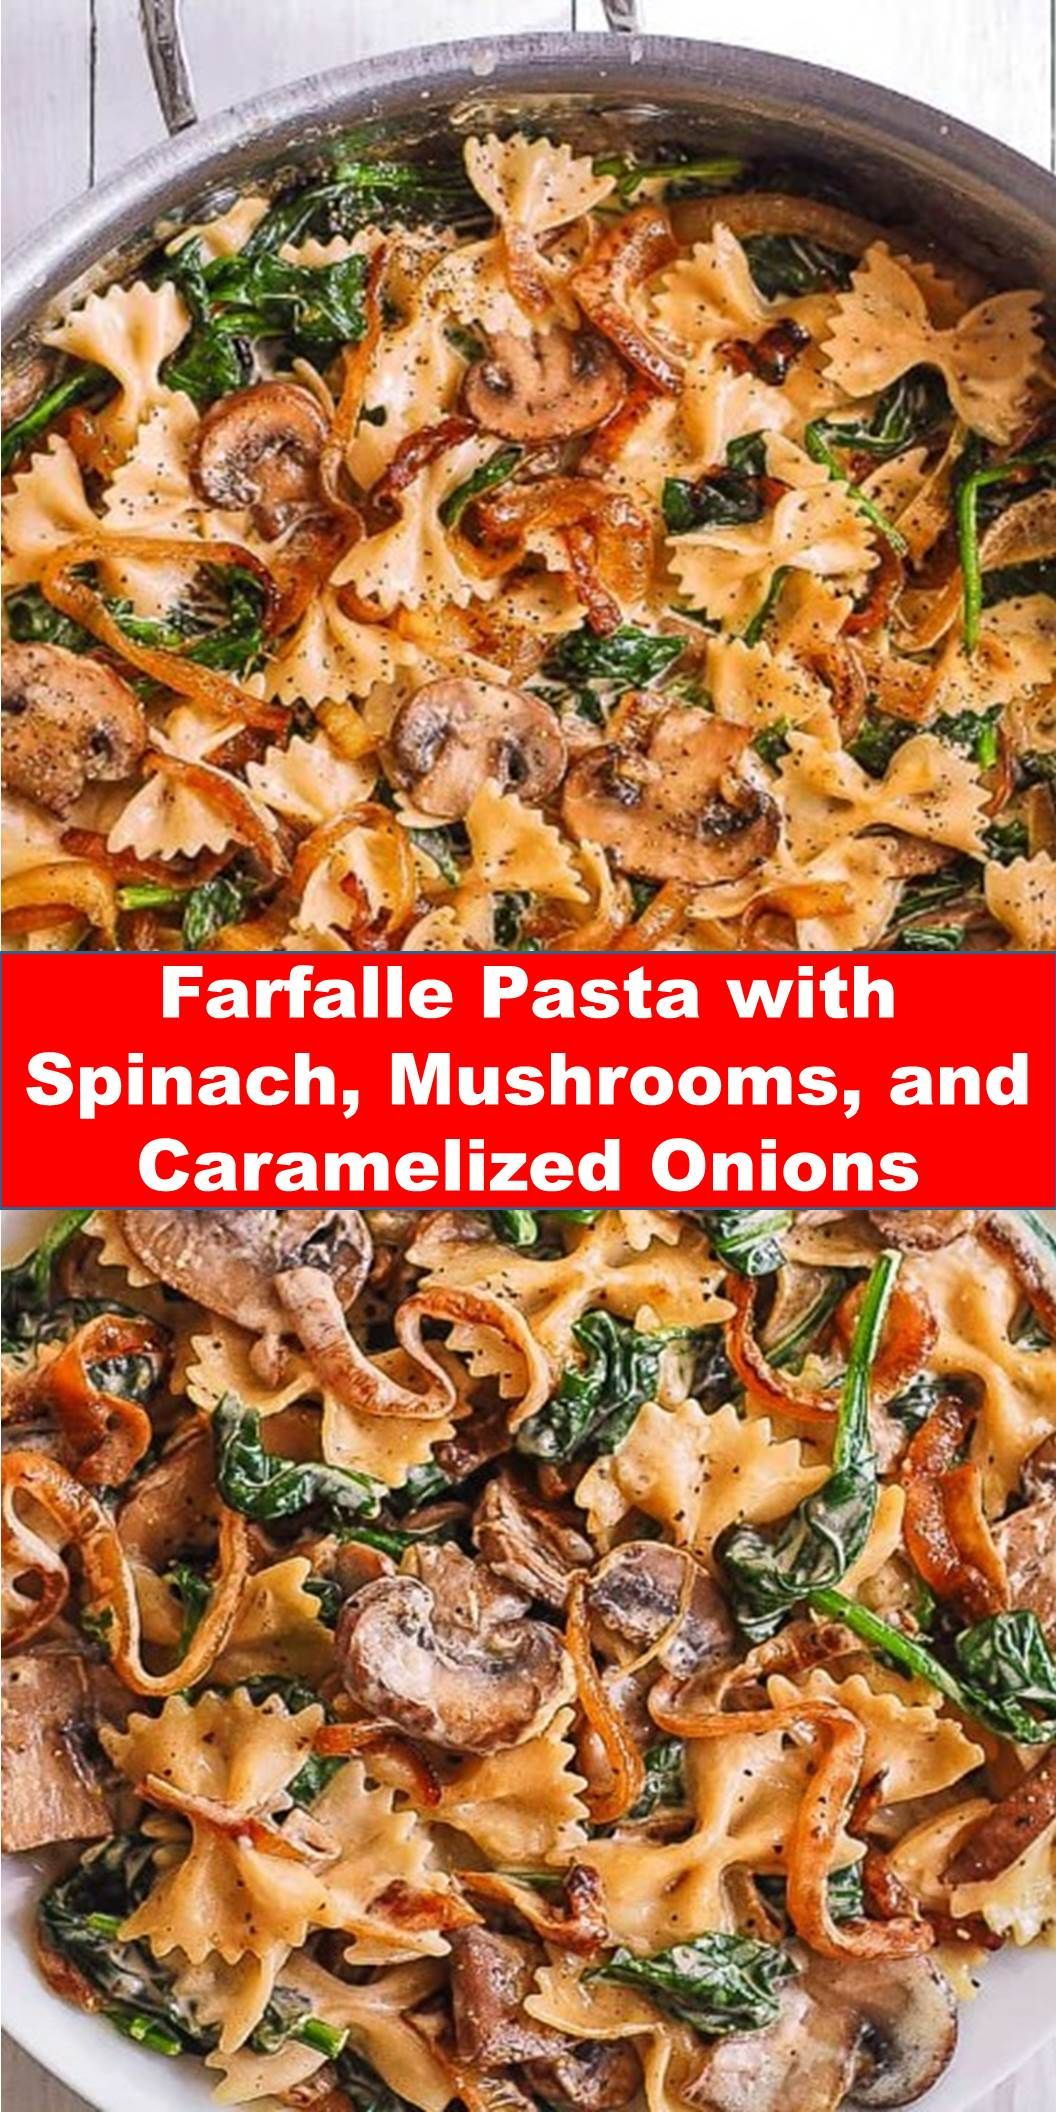 #Best #Farfalle #Pasta #with #Spinach, #Mushrooms, #and #Caramelized #Onions